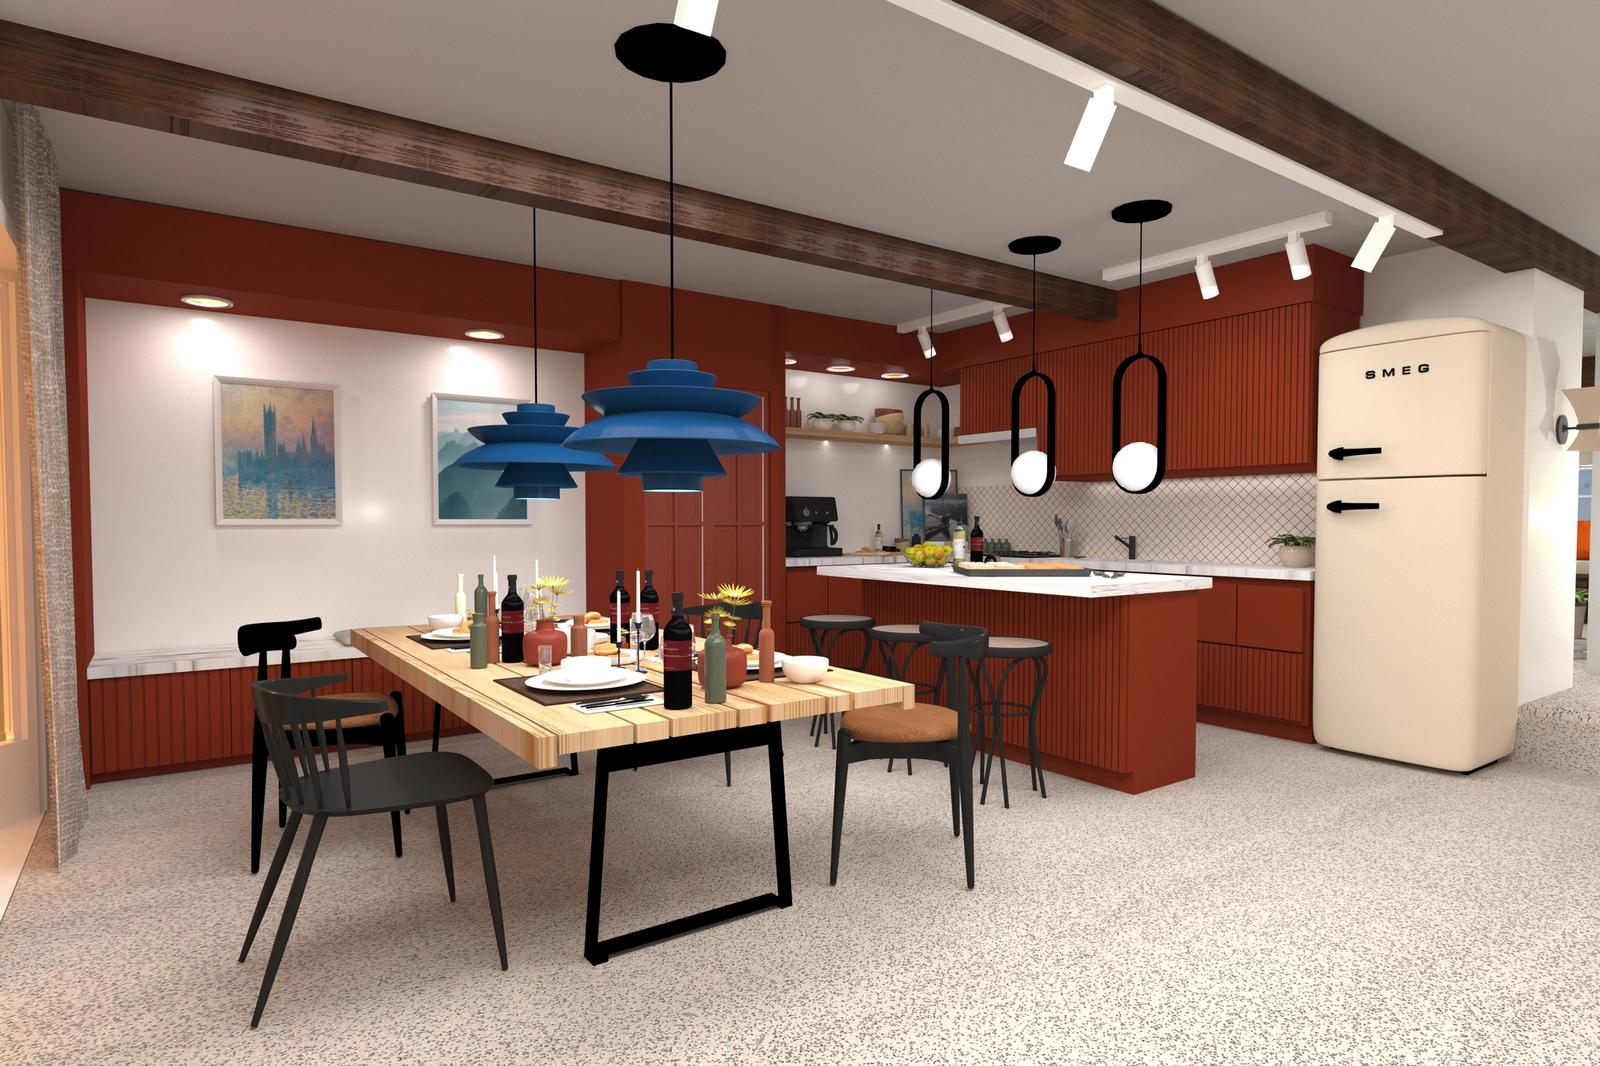 An Artist's Life and Work - Kitchen and Dining area